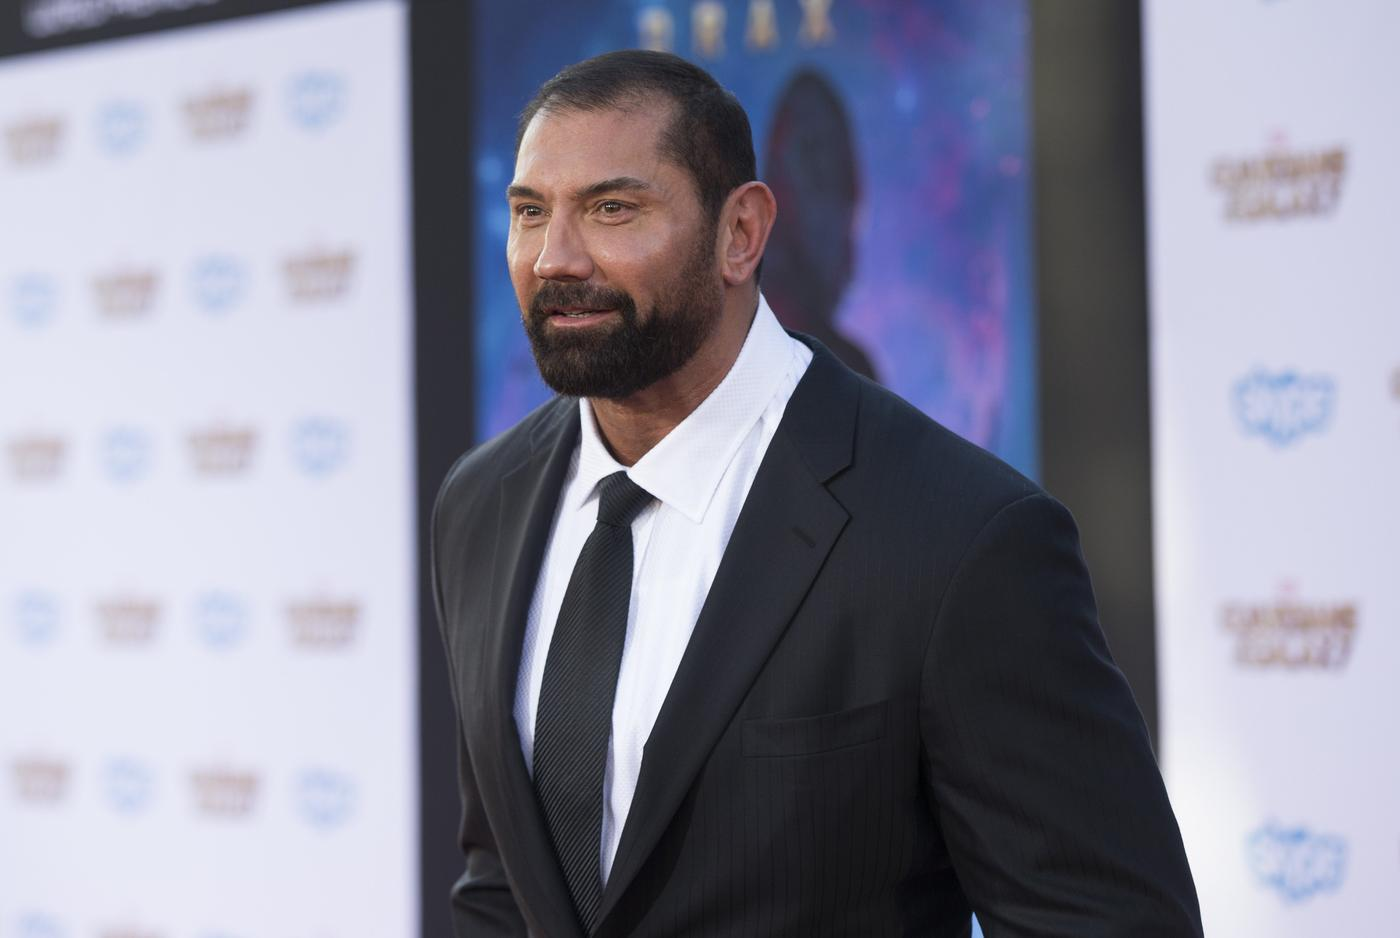 Bond 24: Guardians Of The Galaxy star Dave Bautista for baddie henchman role